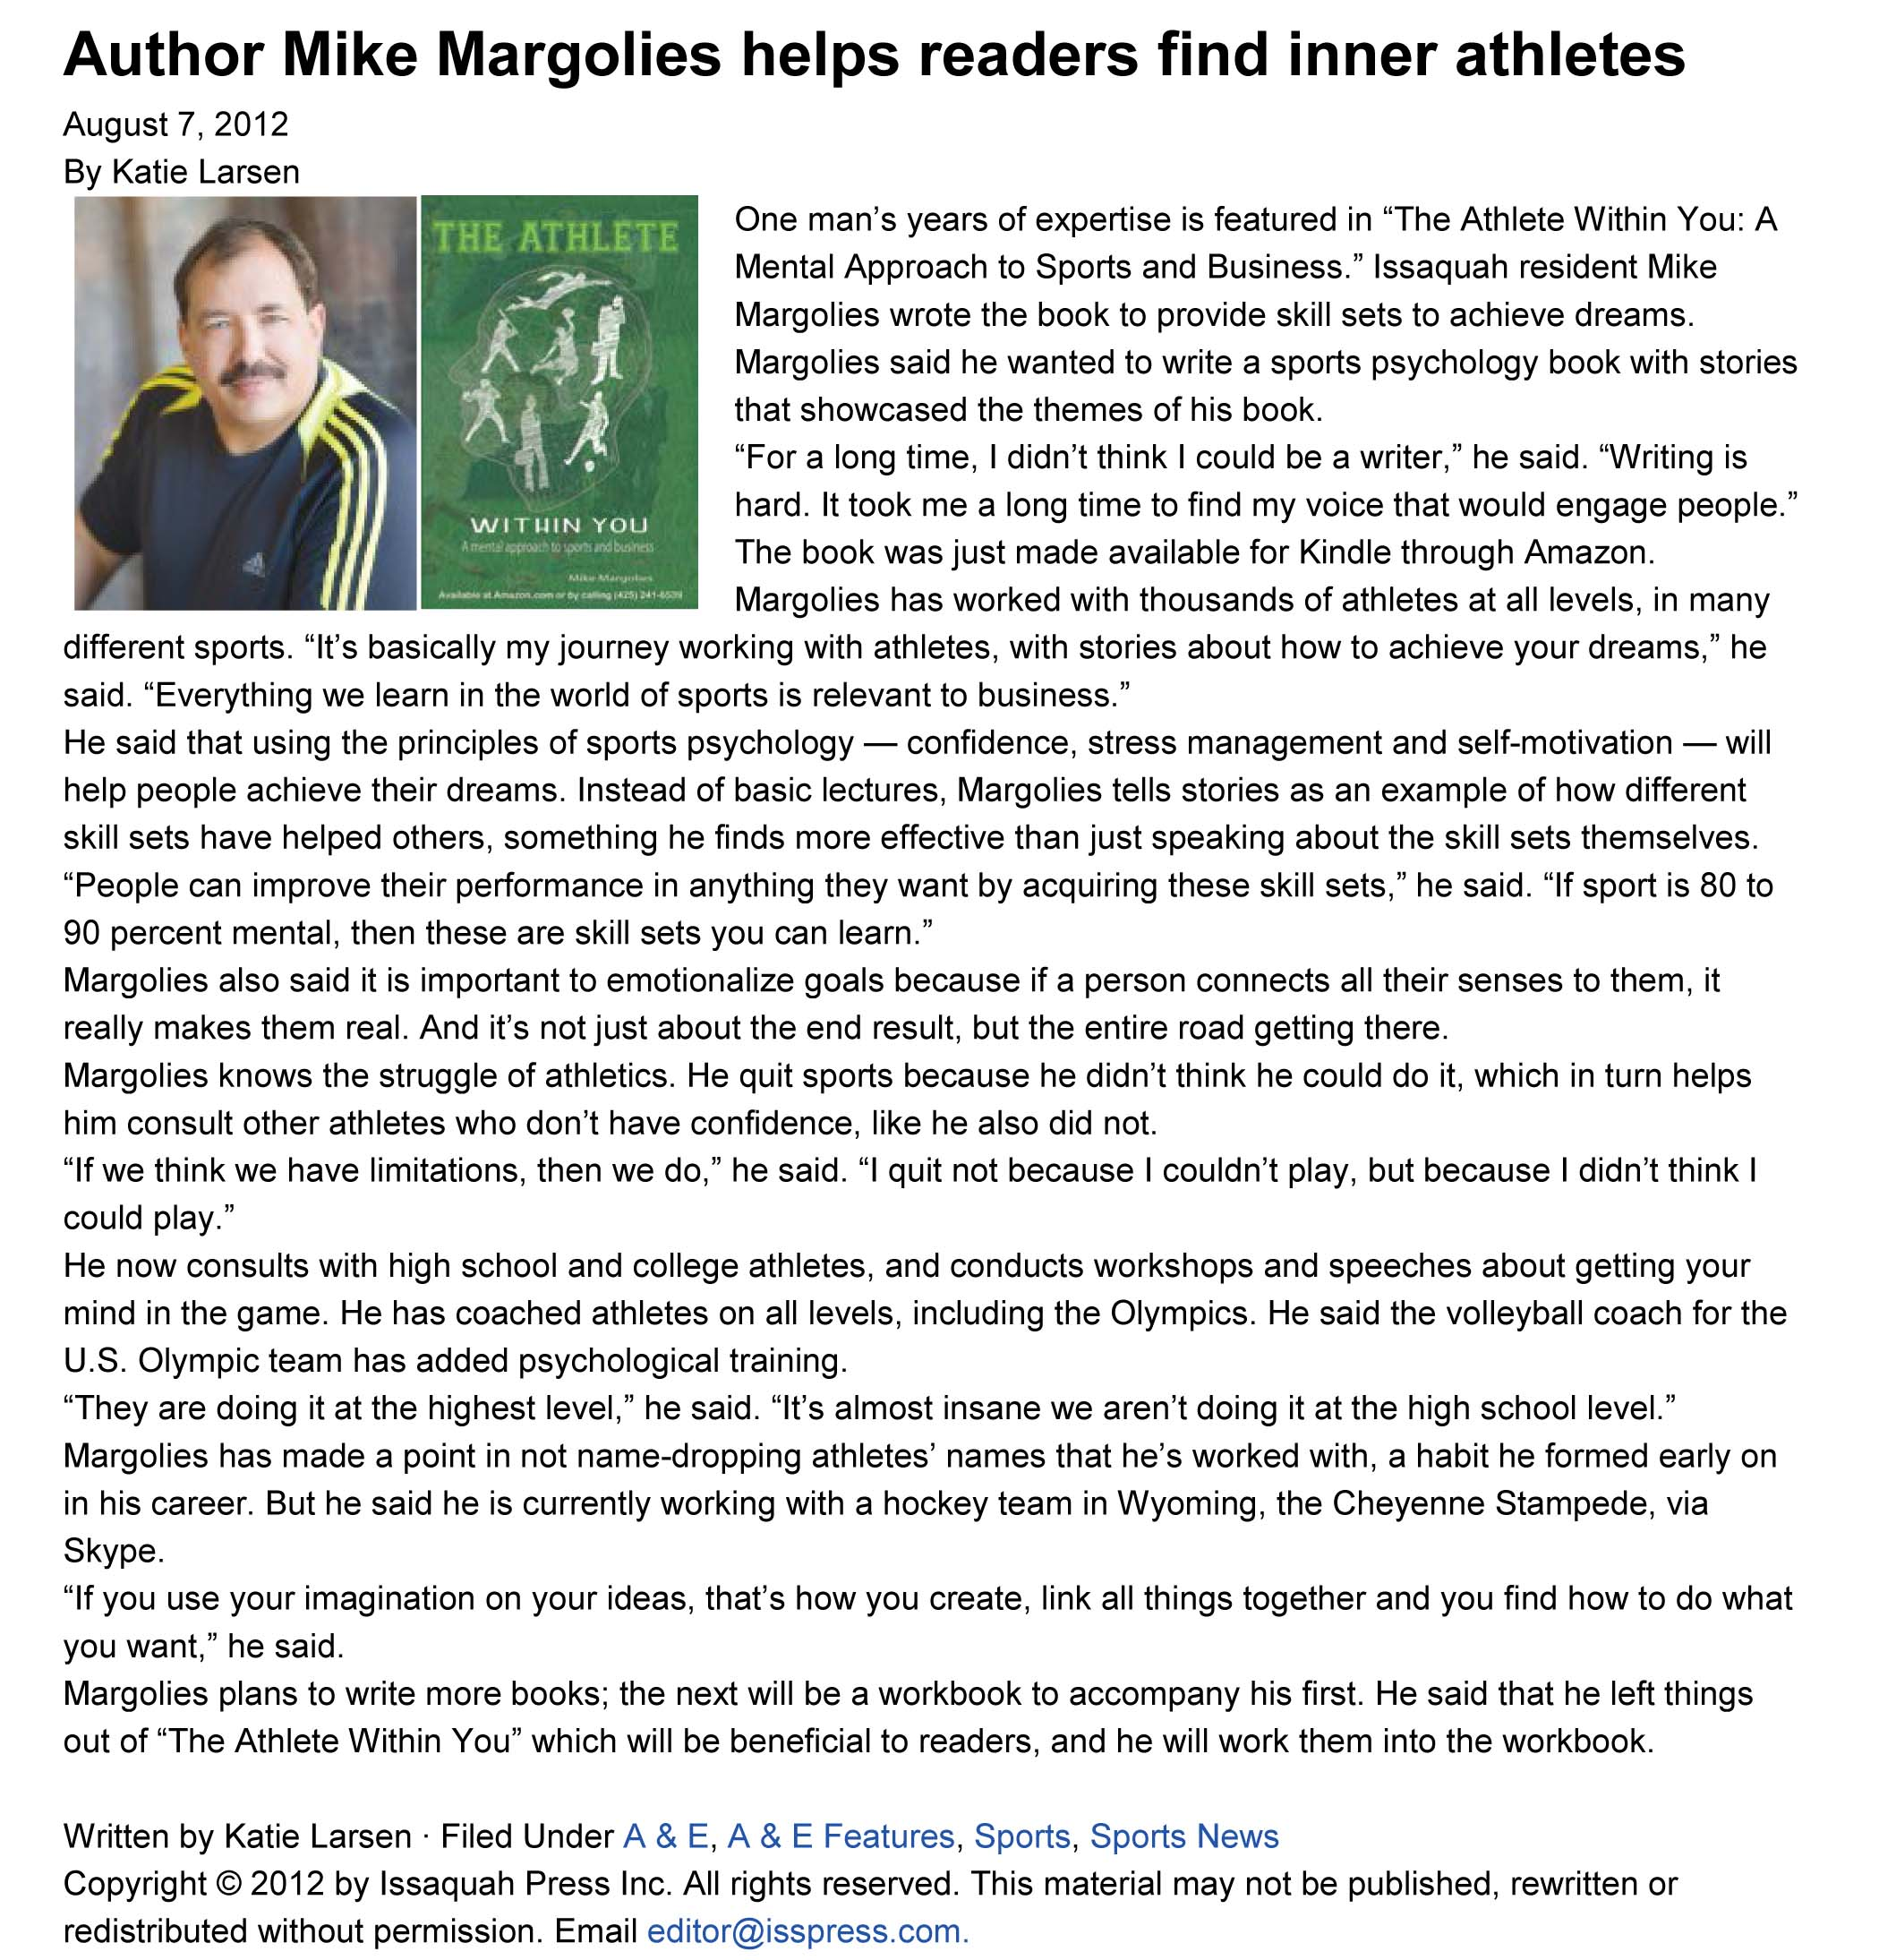 Author Interview- Mike Margolies and The Athlete within You